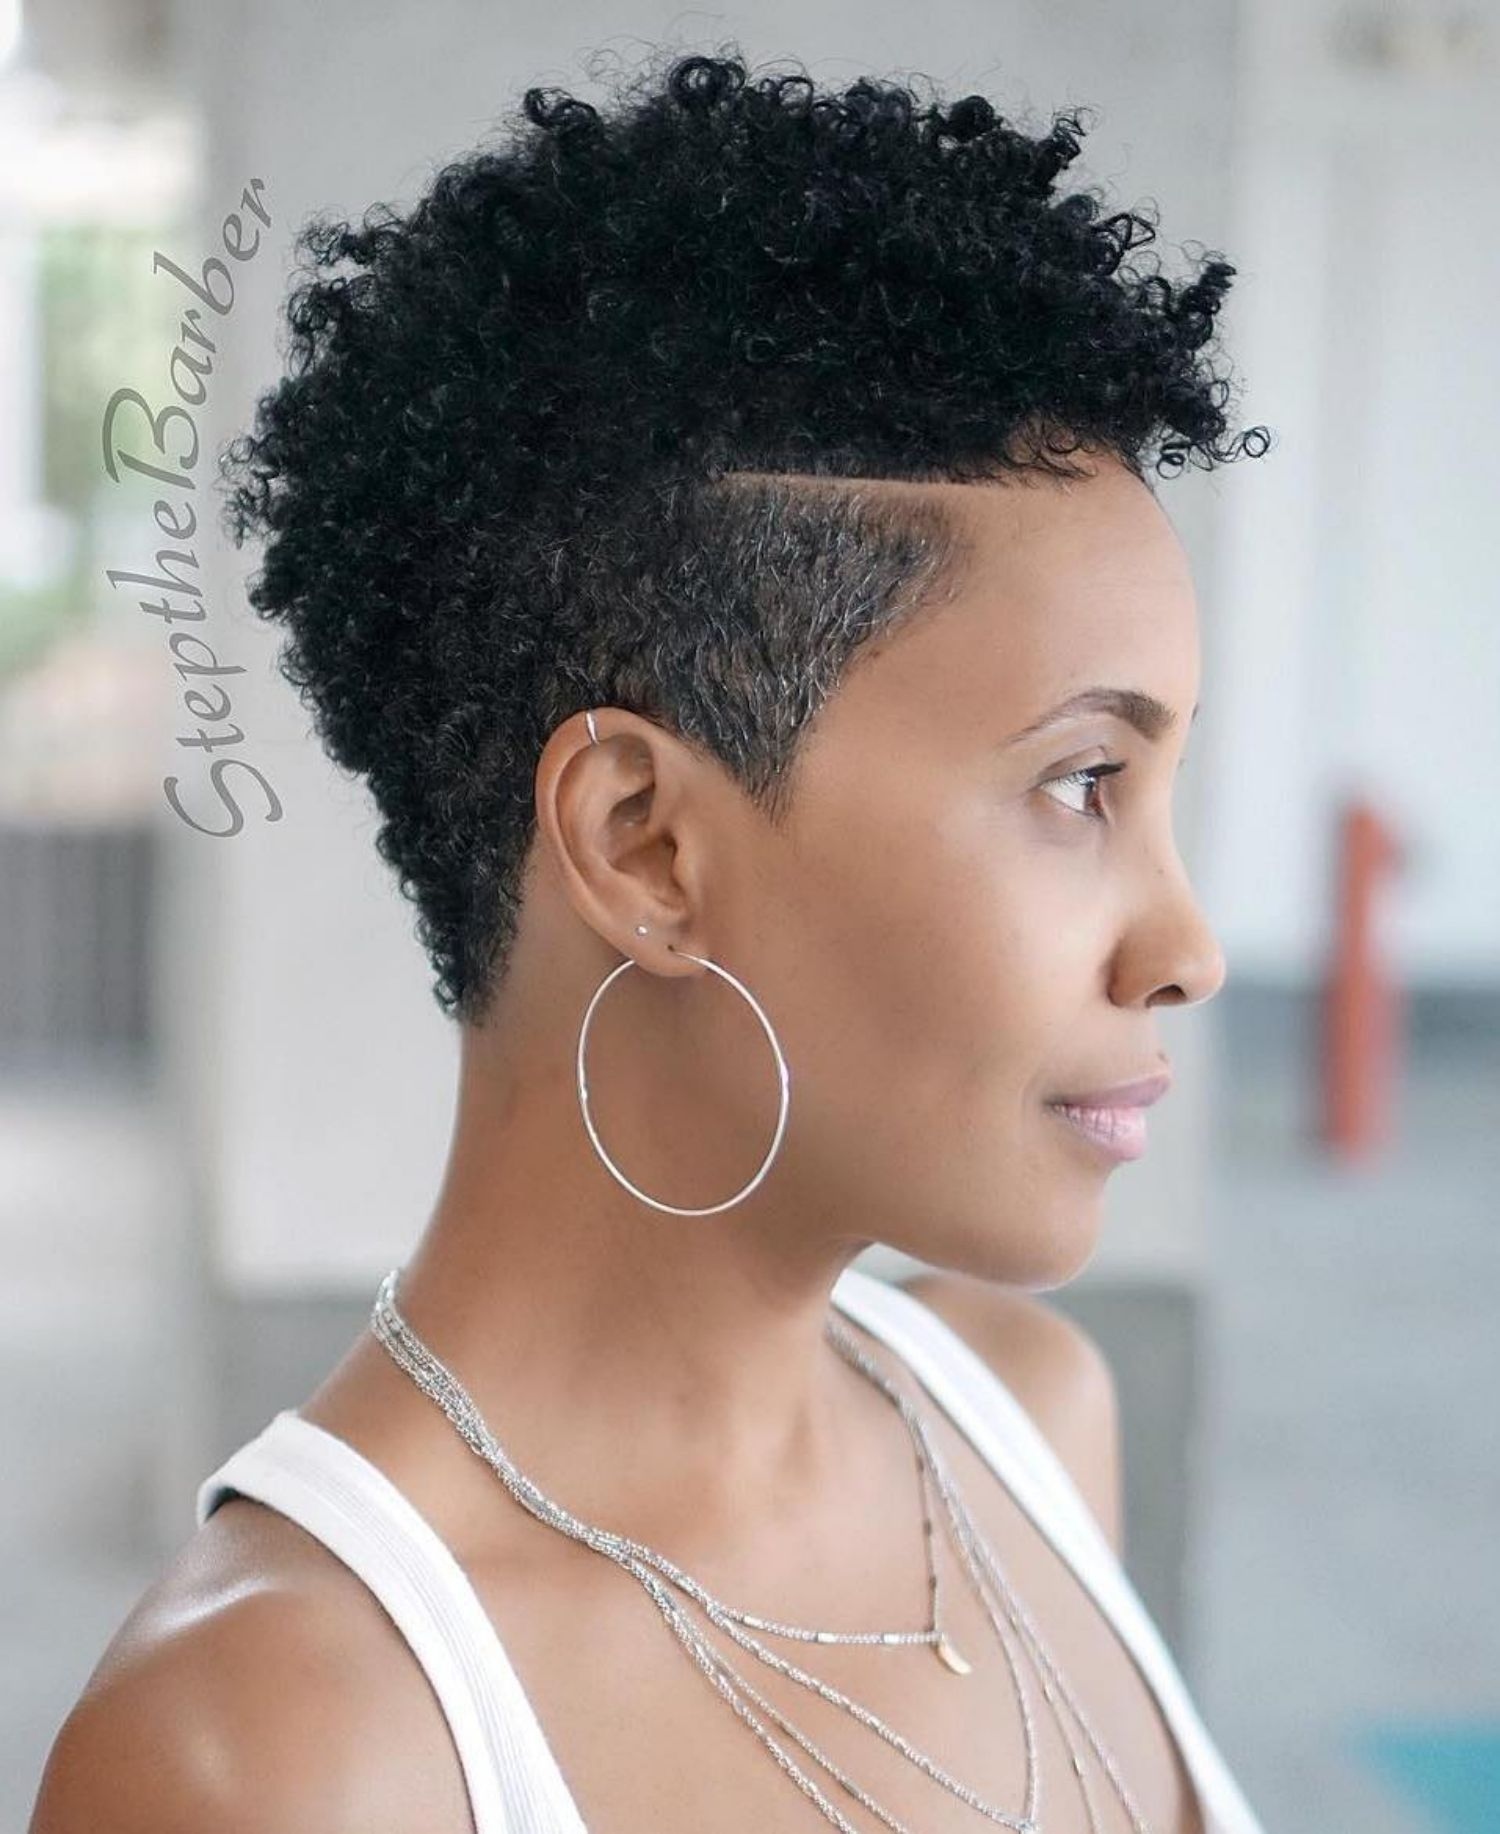 60 great short hairstyles for black women | hairstyles in